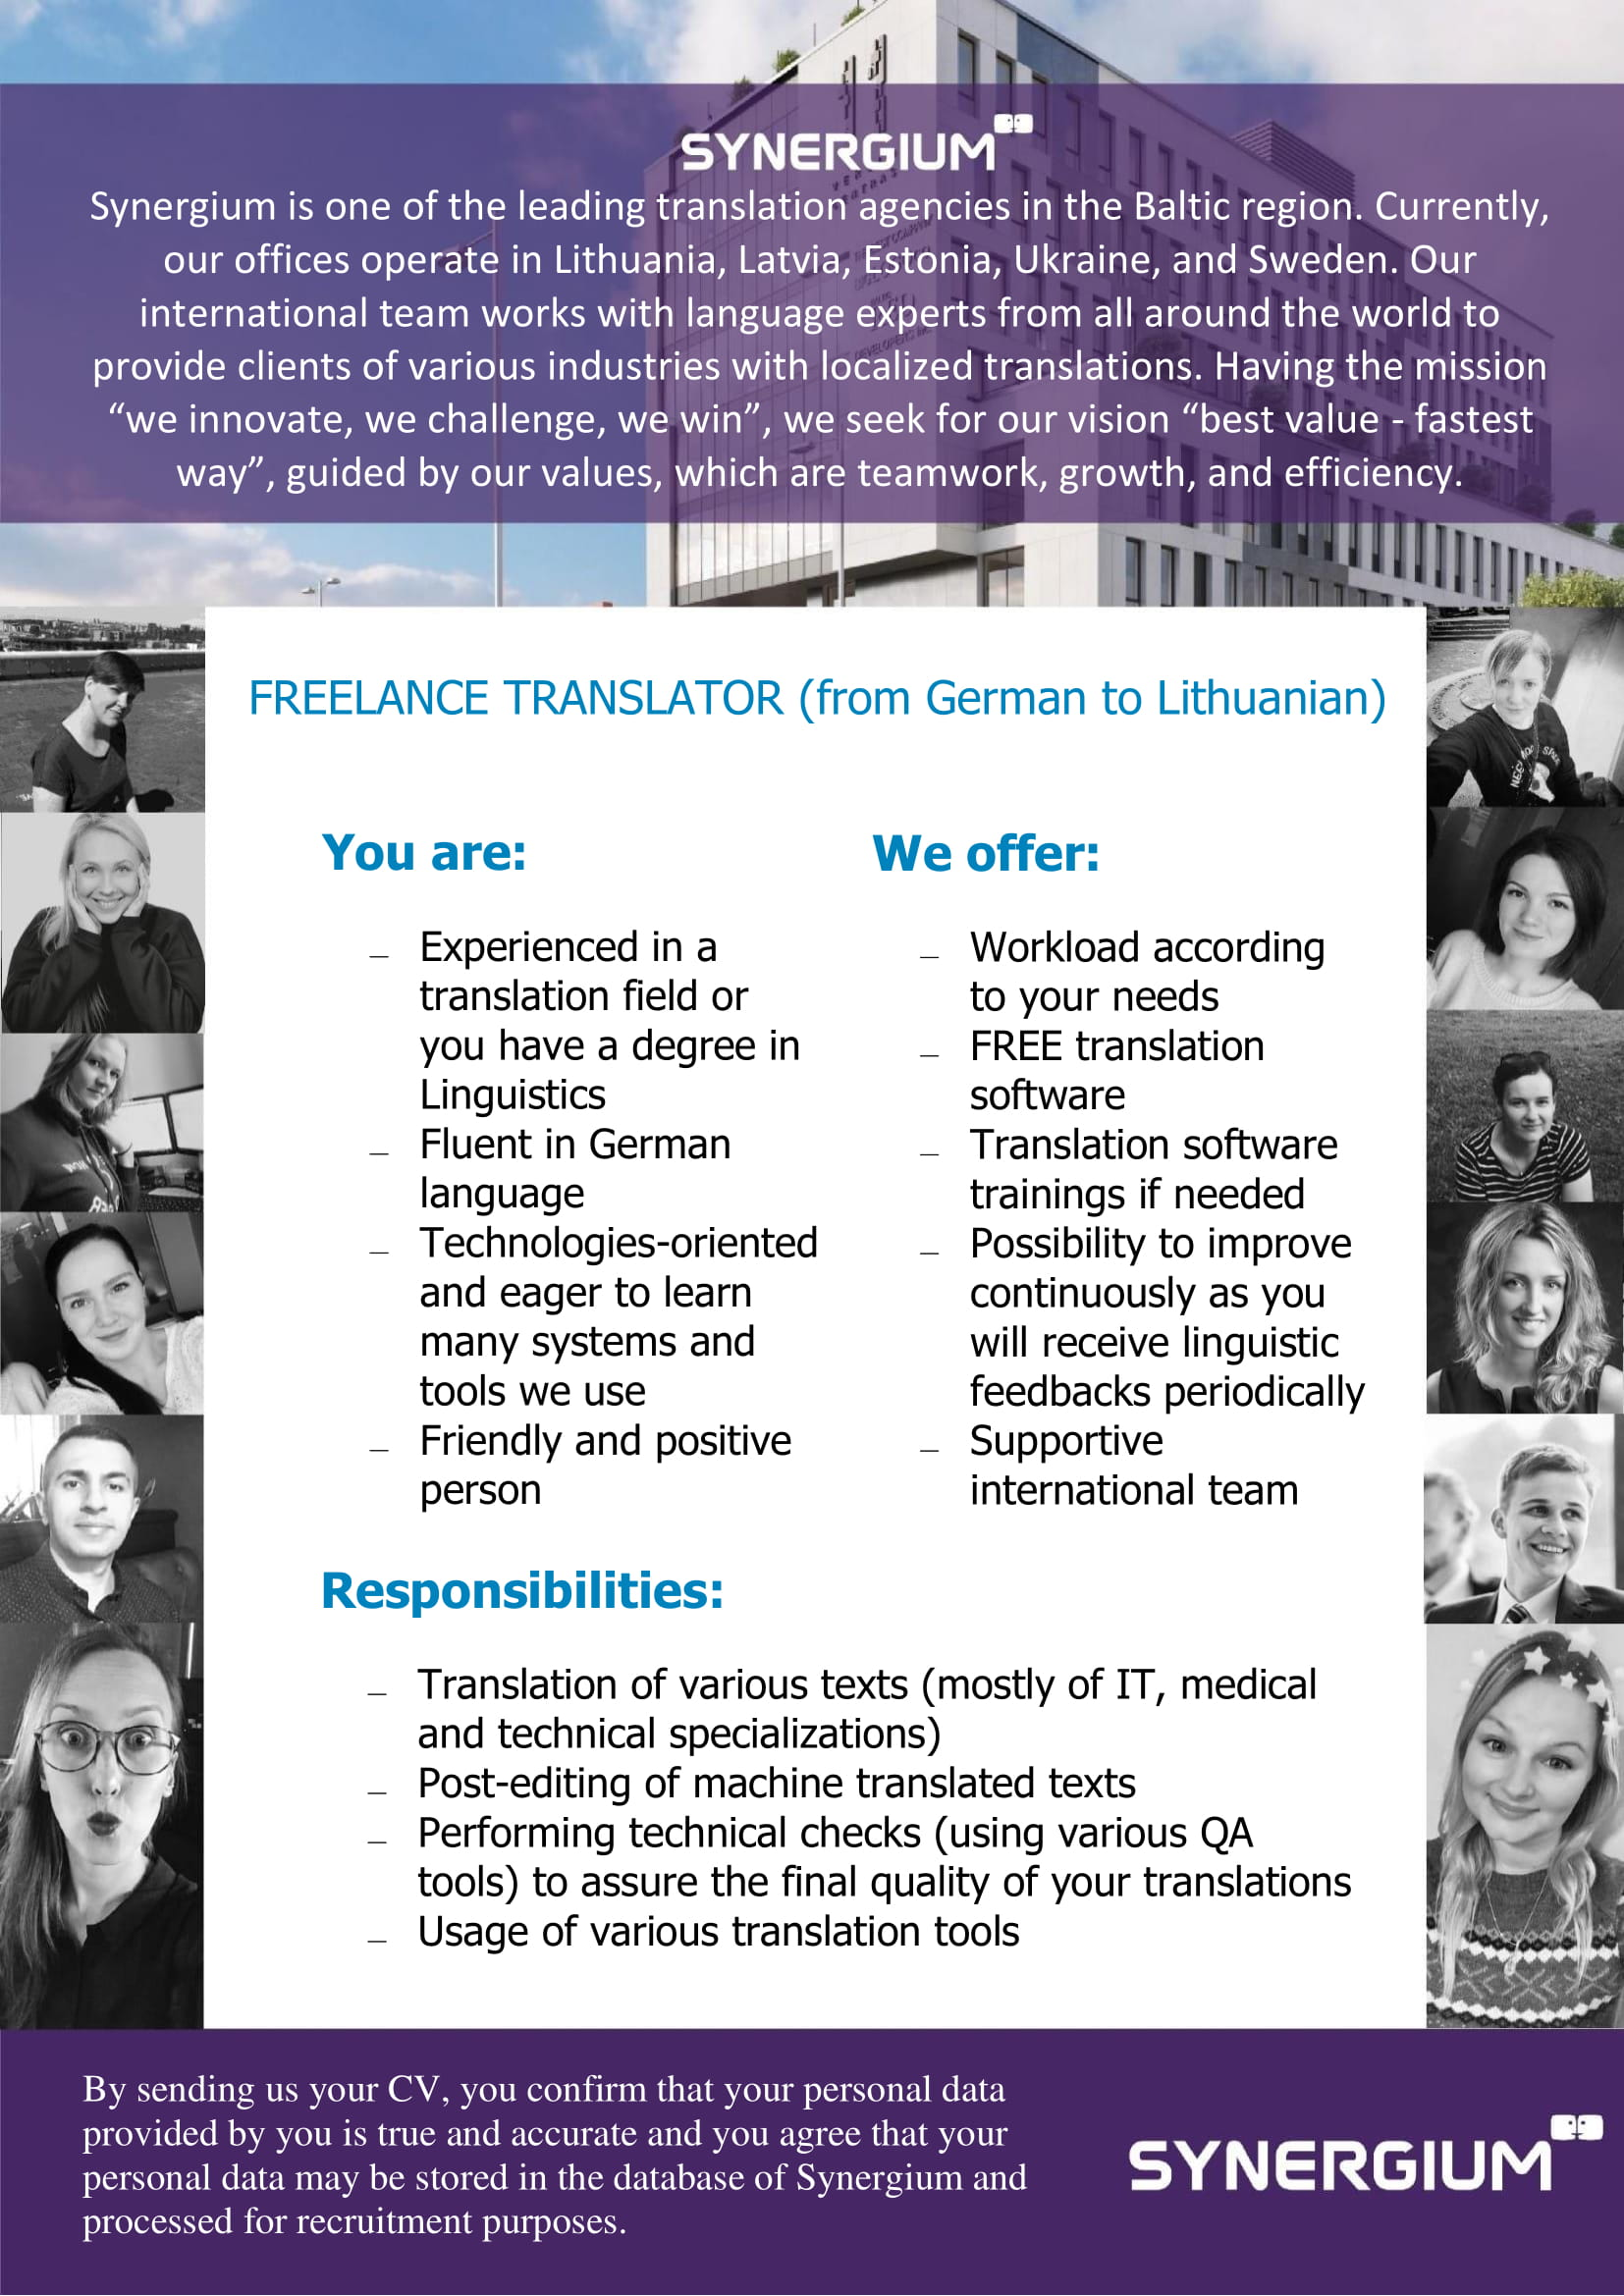 freelance translator from german to lithuanian job advertisement synergium